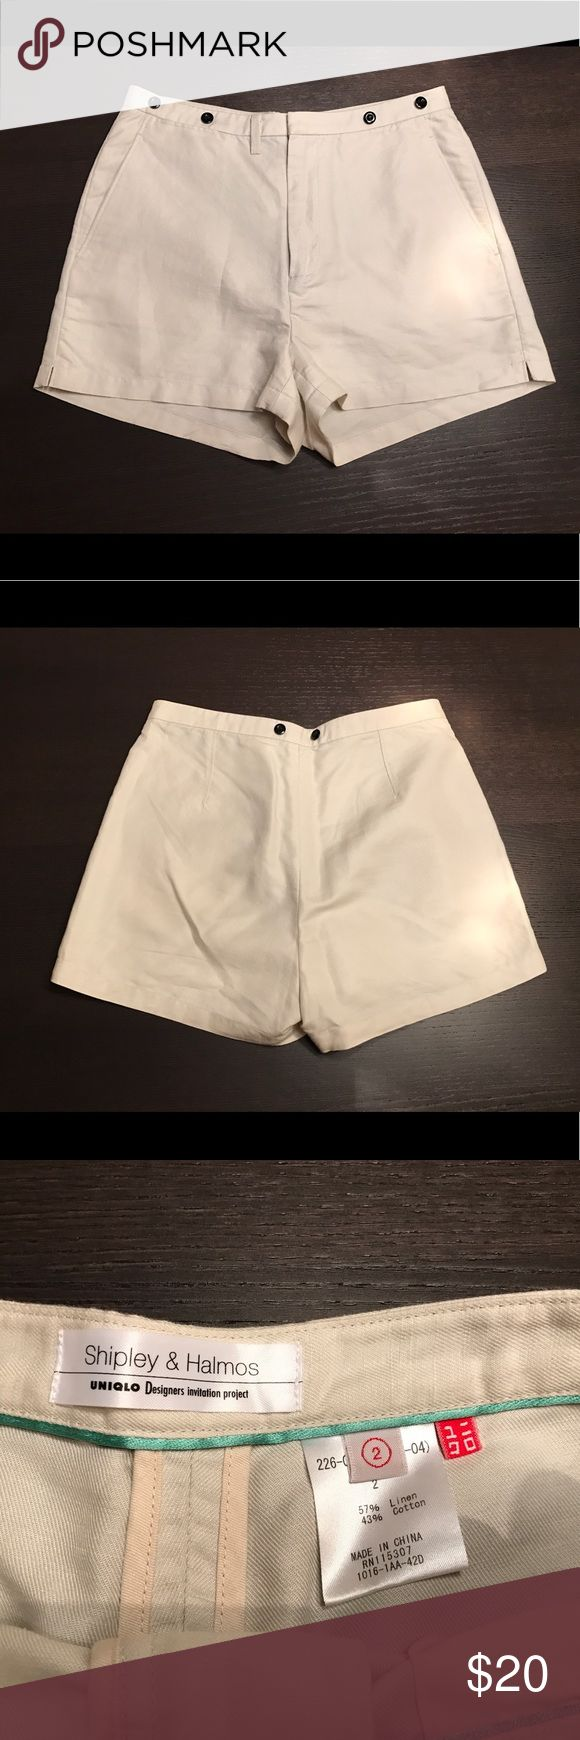 """Uniqlo + Shipley & Halmos beige khaki shorts Sz 2 Excellent condition. High quality cotton and linen fabric. High rise 50s style. Waist measures about 13"""" laying flat. Overall length is 12.5"""" at the outseam. Uniqlo Shorts"""